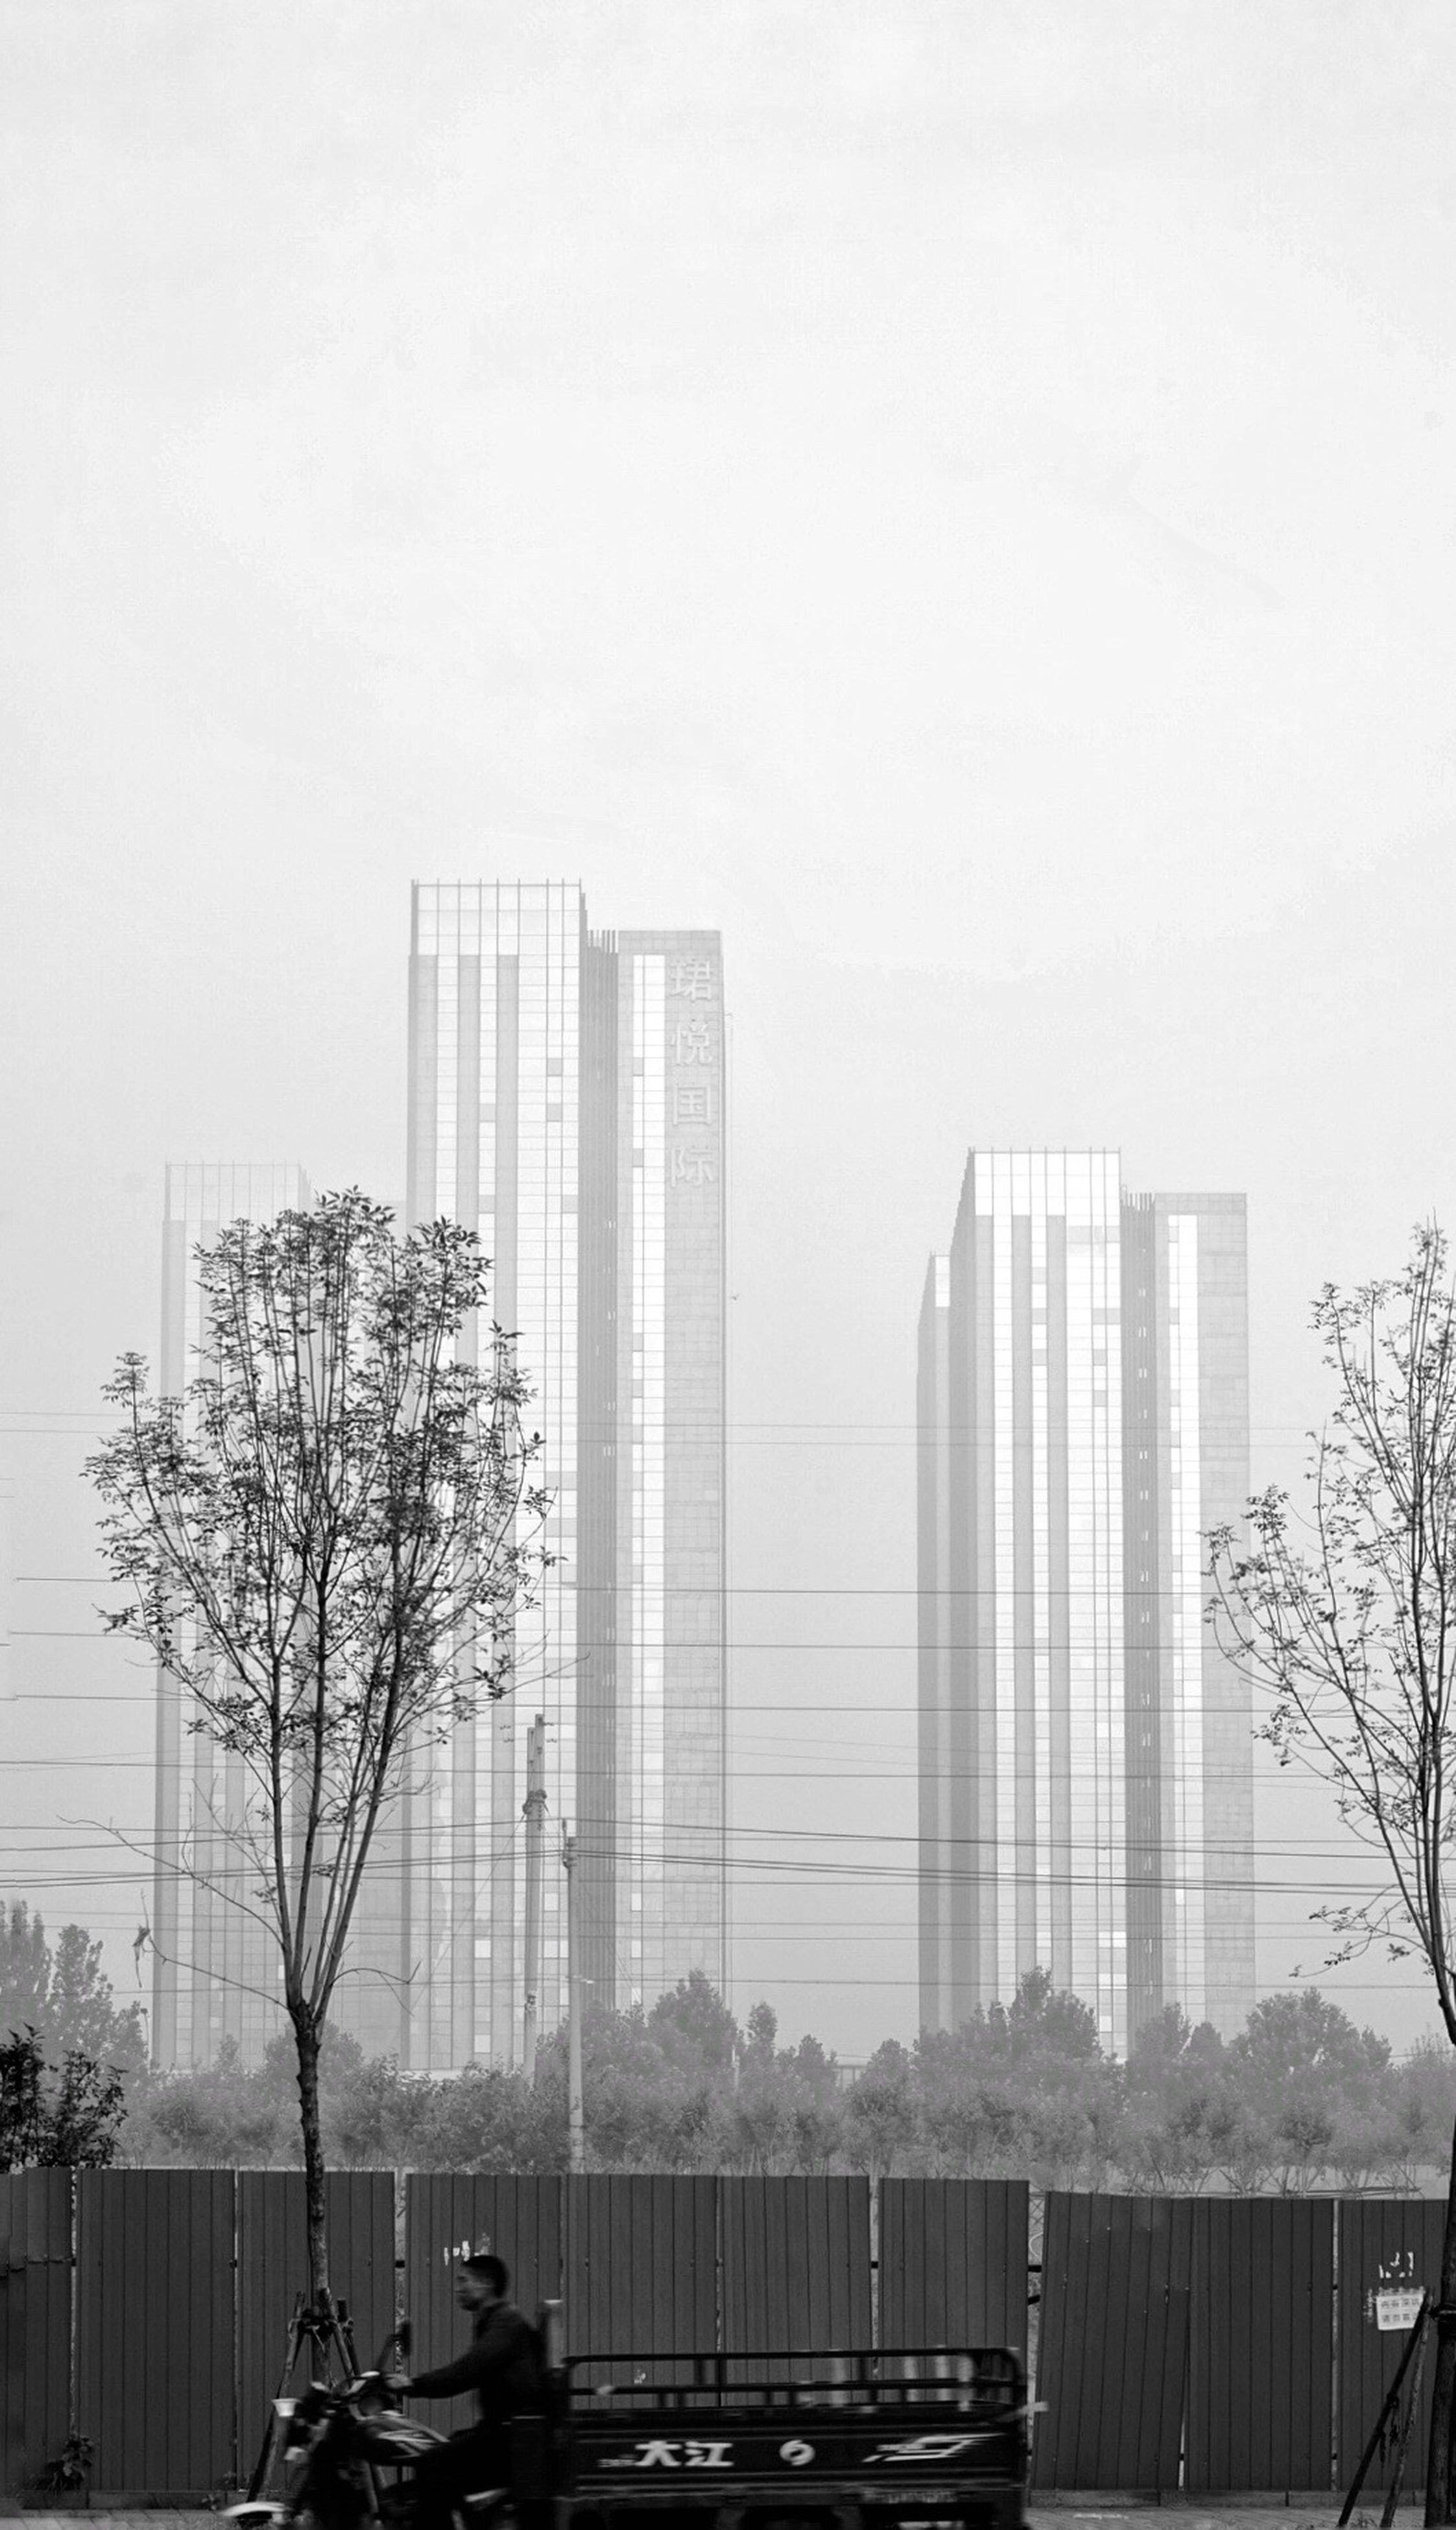 architecture, built structure, skyscraper, city, modern, office building, tall - high, building, development, urban skyline, day, city life, outdoors, cityscape, no people, sky, tall, growth